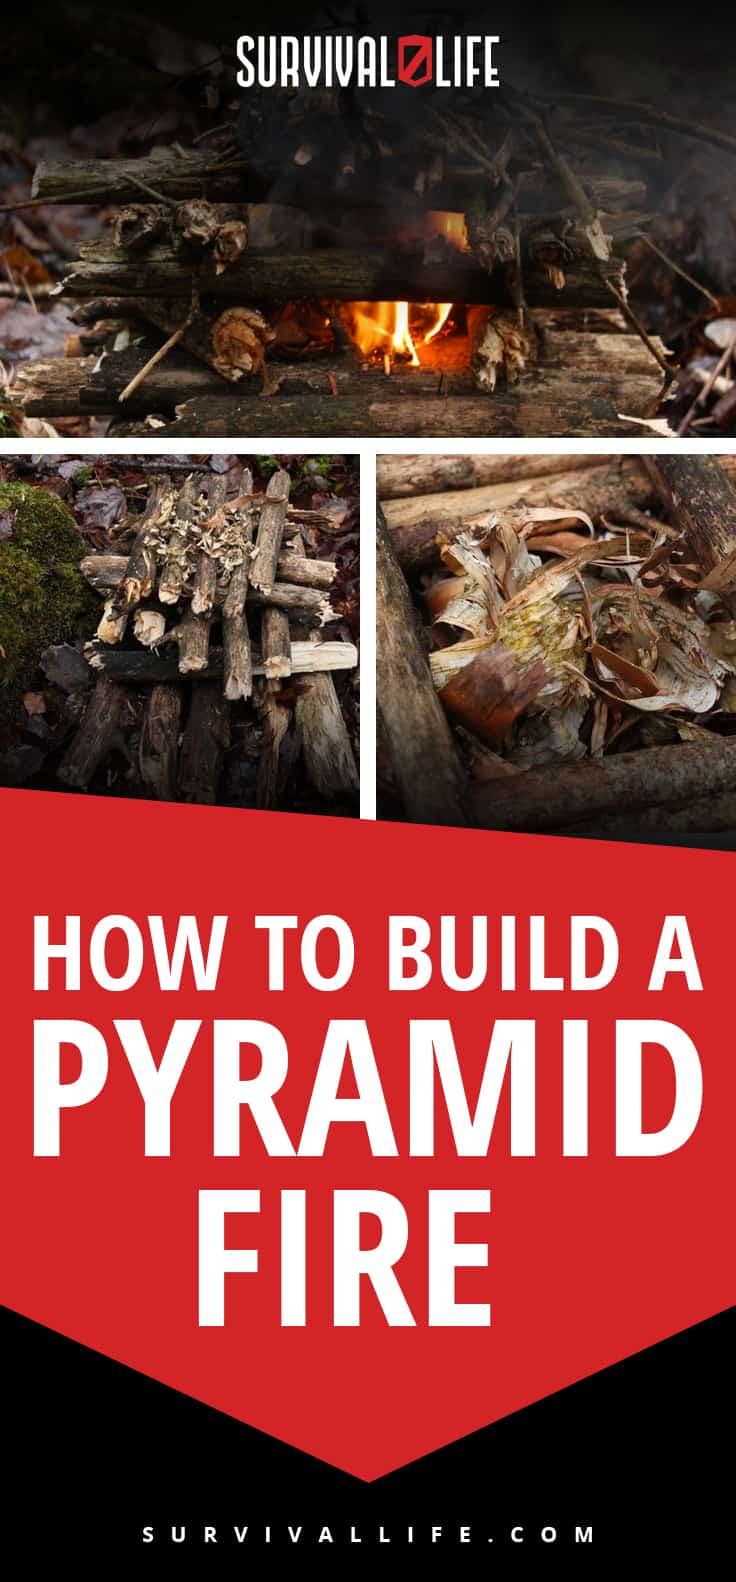 How To Build A Pyramid Fire | Survival Life | https://survivallife.com/build-pyramid-fire/